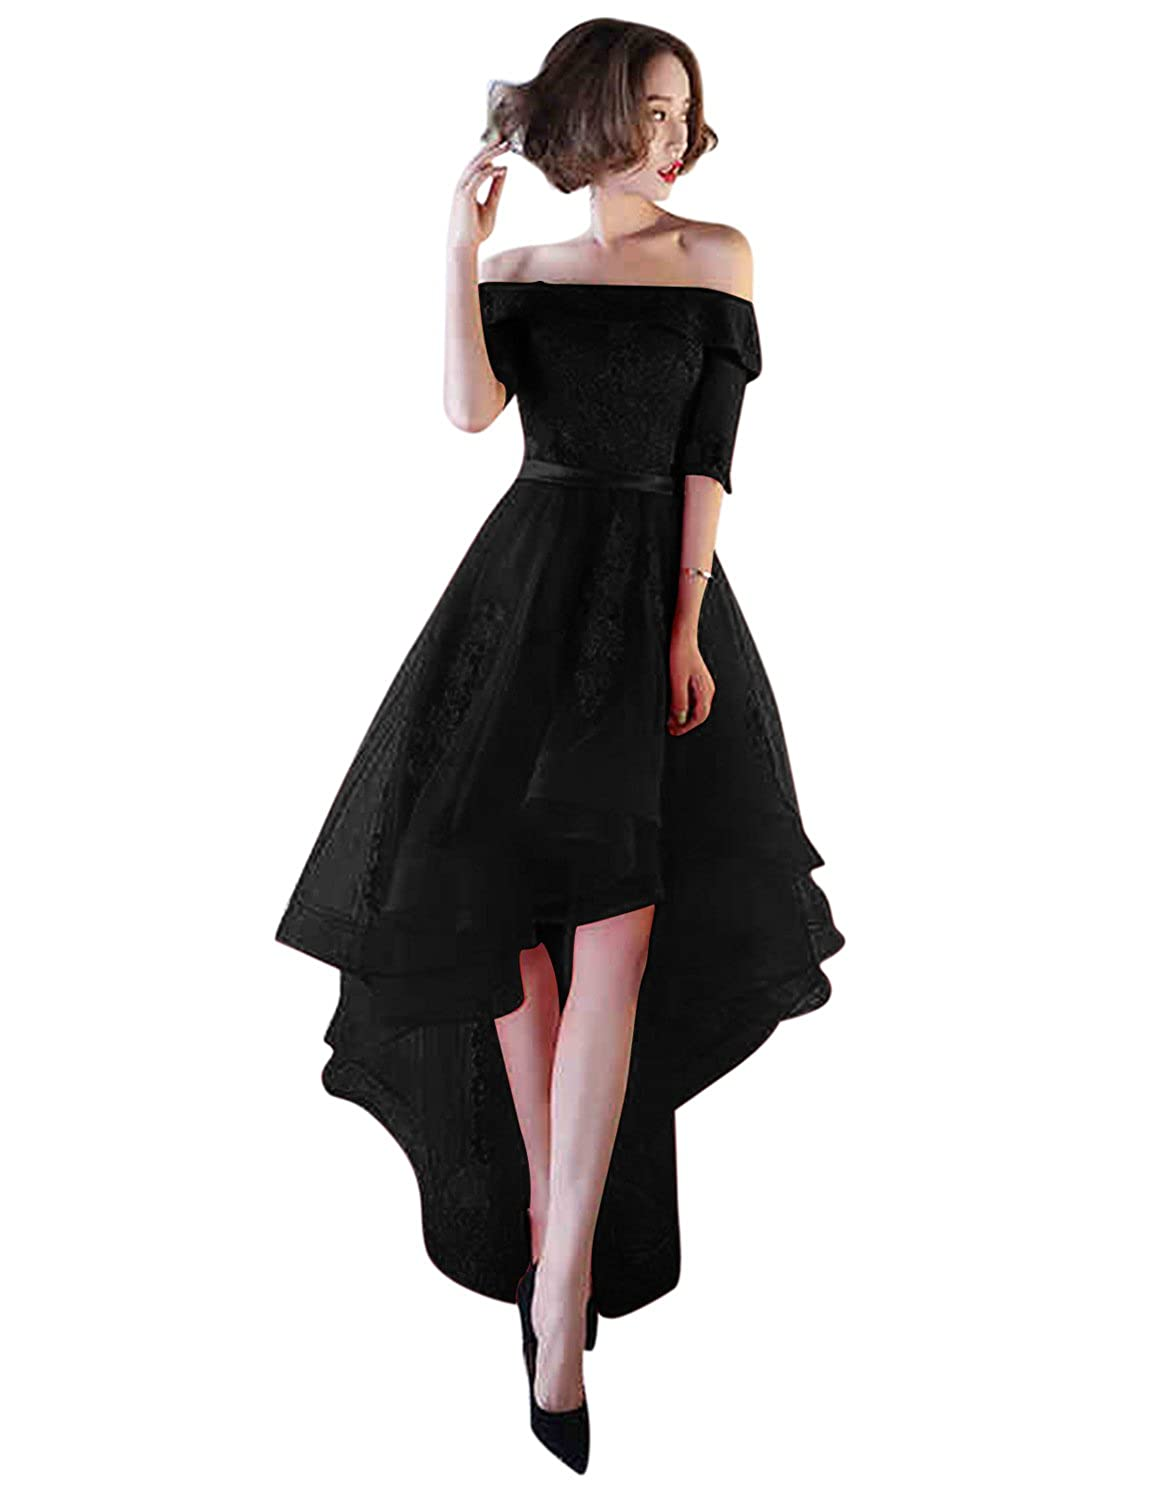 Black BessWedding Women's Tulle High Low Homecoming Dresses Short 2018 Formal Prom Gown BHZ707